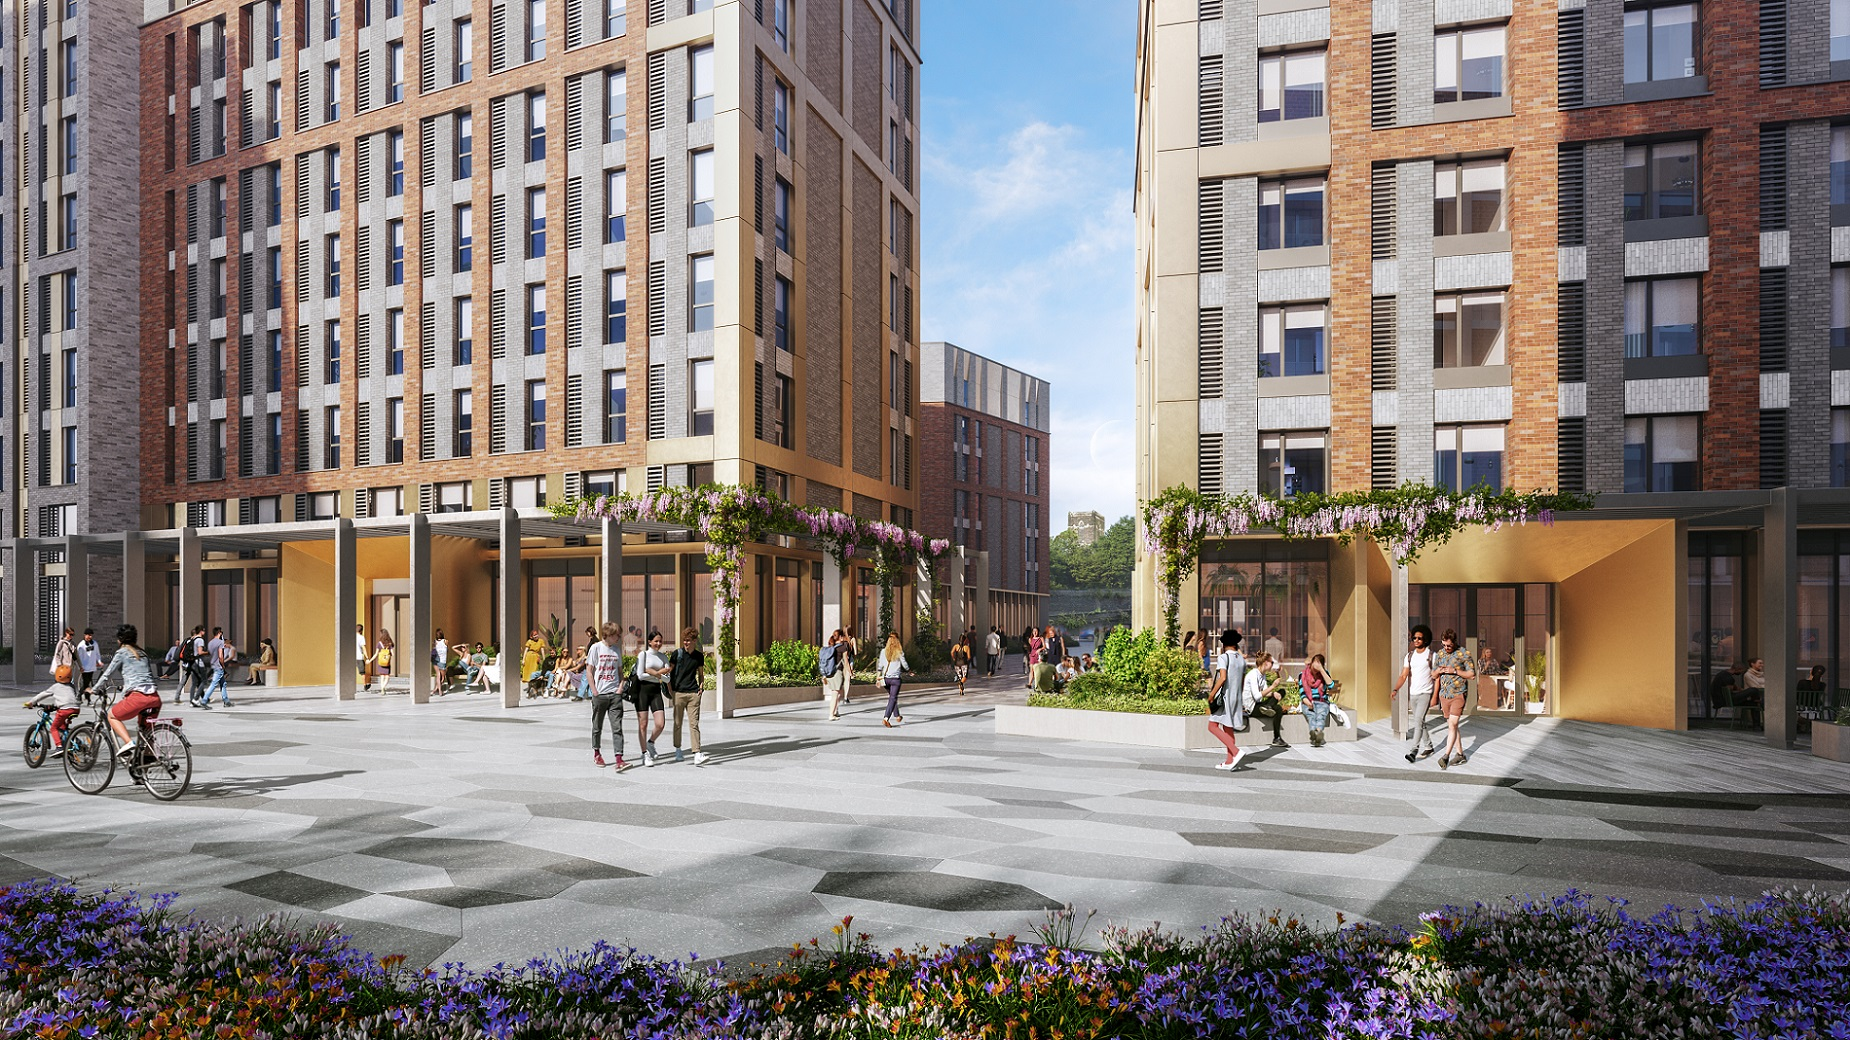 Conygar student living scheme will be beacon for Nottingham credit DAY Architectural